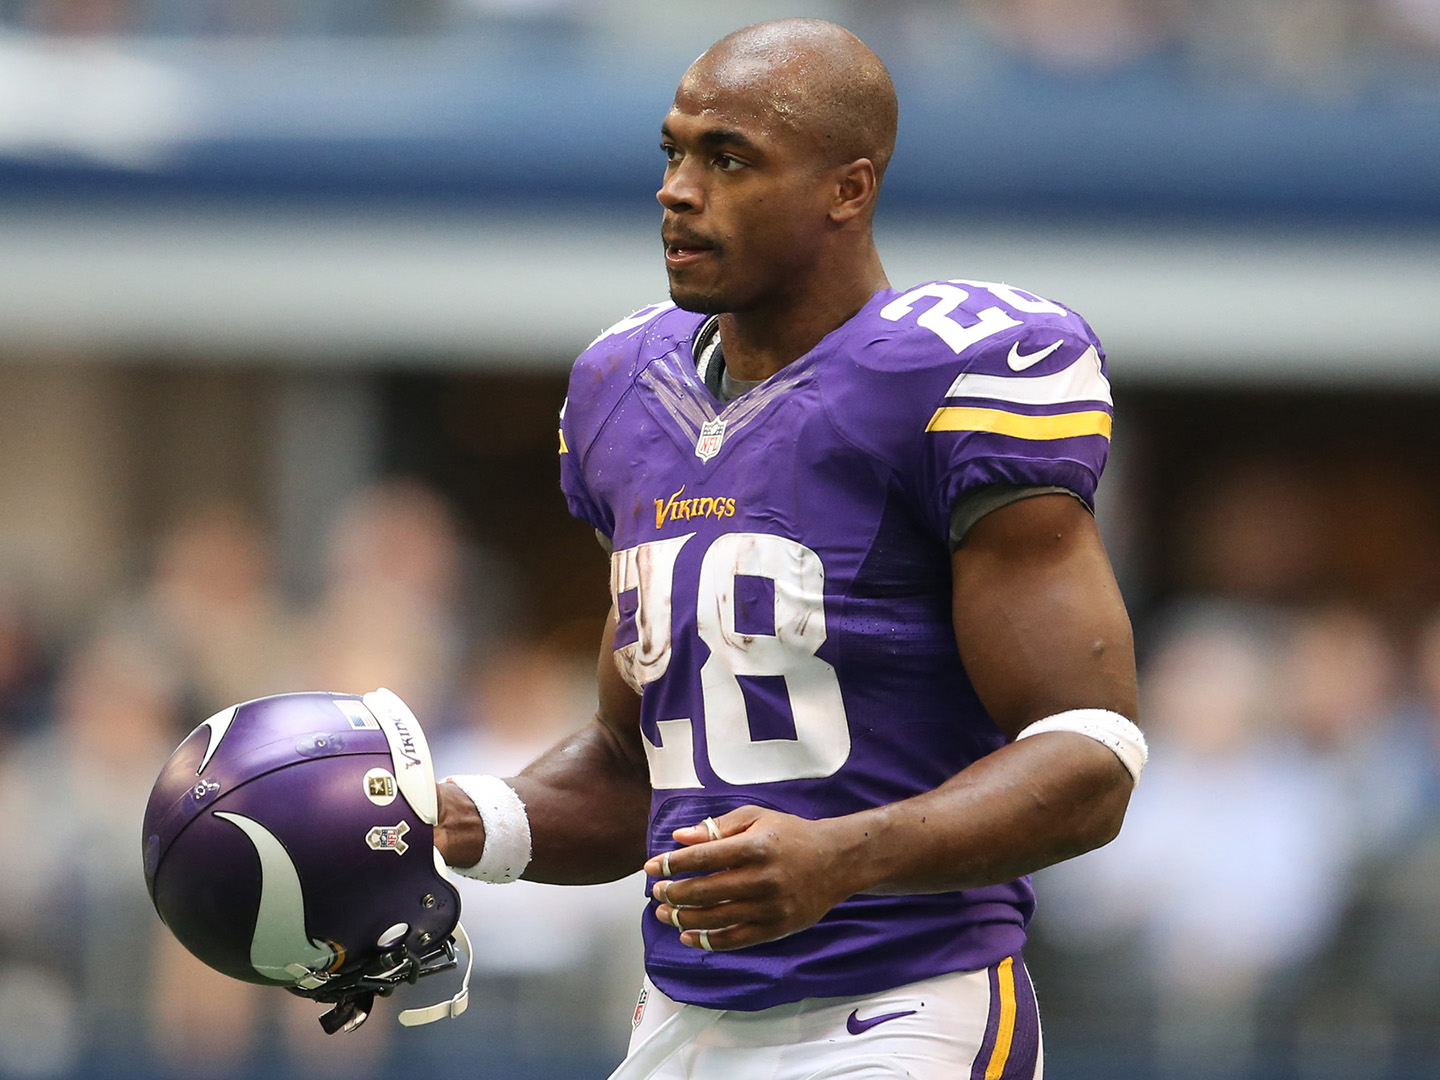 Adrian Peterson could be out for the season